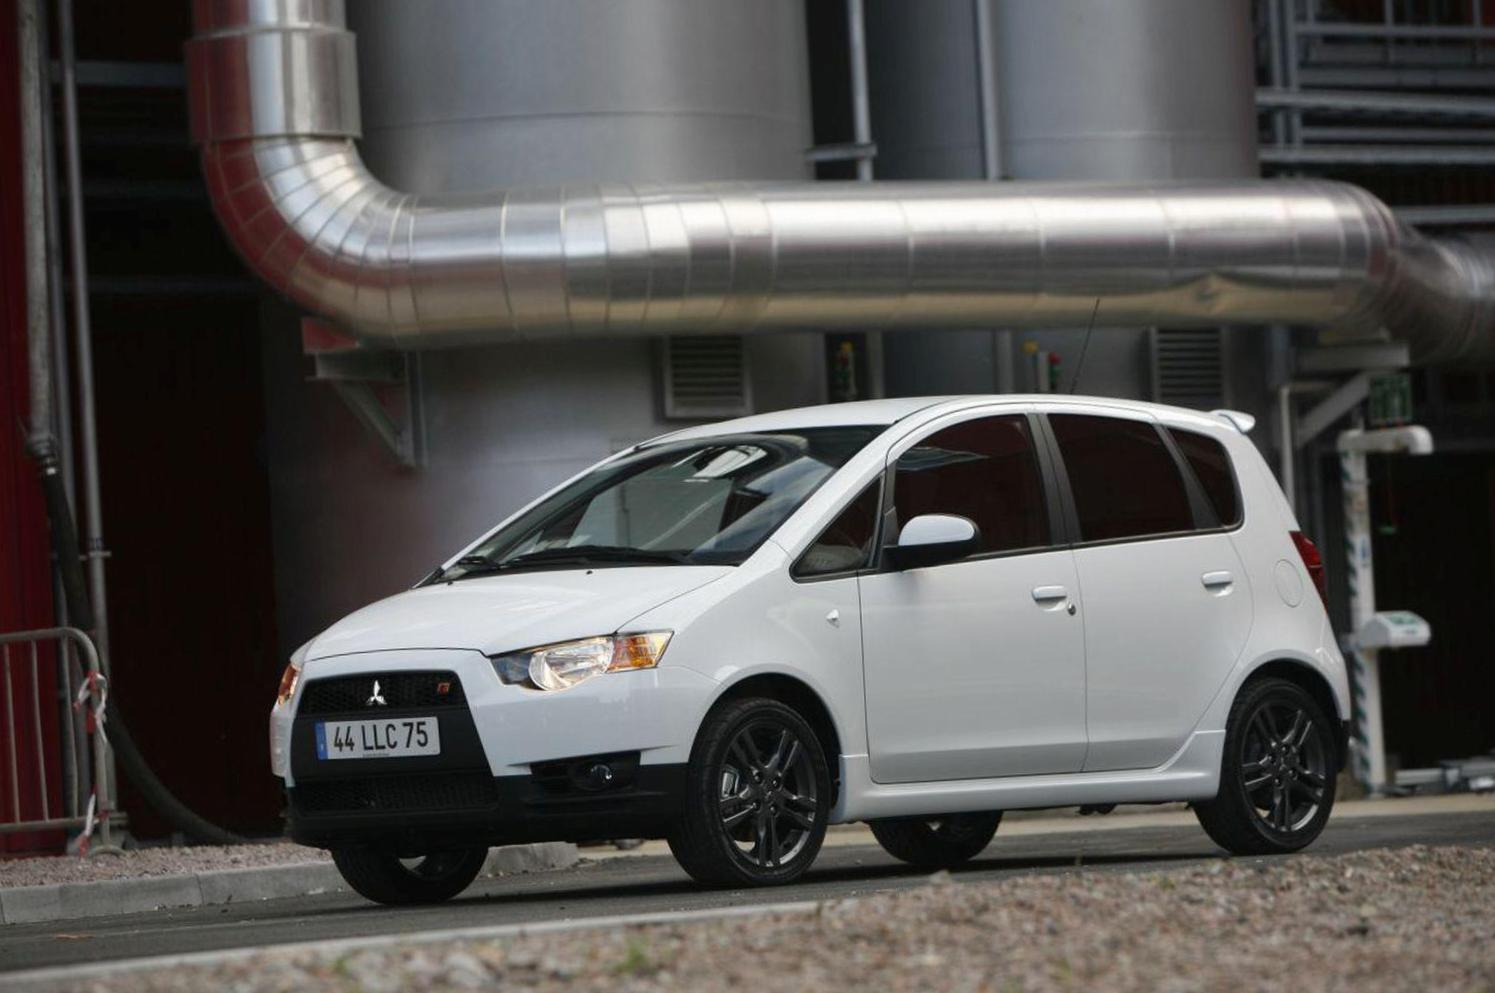 Mitsubishi Colt 5 doors how mach 2009